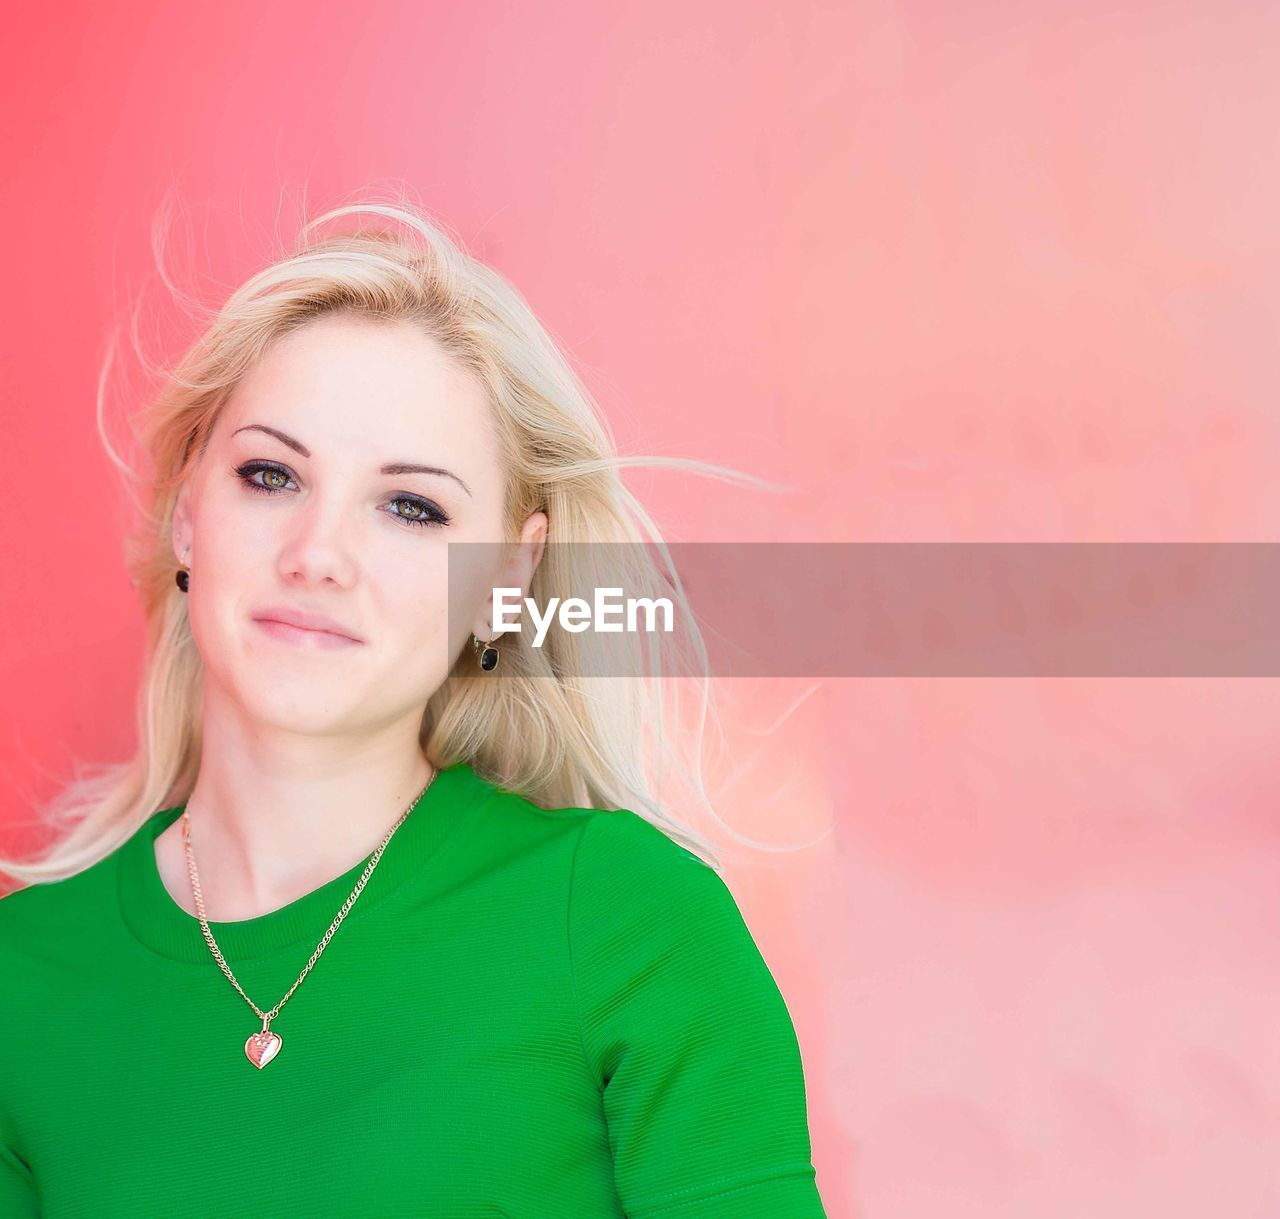 portrait, blond hair, hair, women, one person, front view, looking at camera, adult, pink color, headshot, young adult, young women, colored background, beauty, copy space, beautiful woman, studio shot, indoors, hairstyle